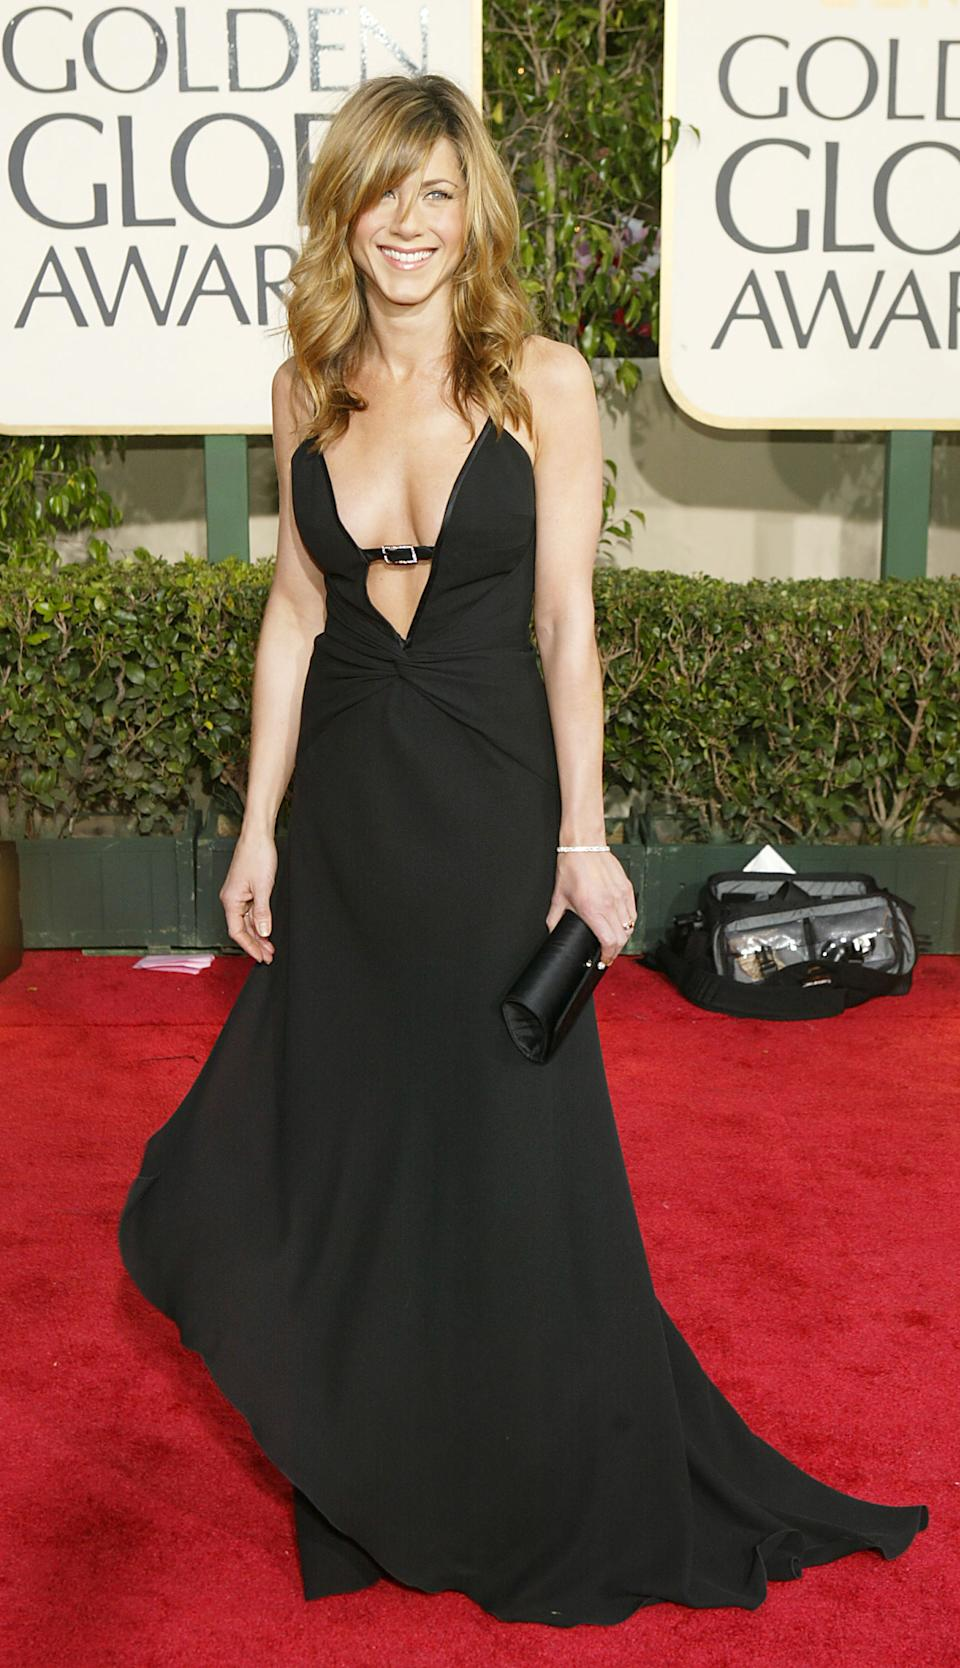 "<p>I'm sure we can all agree that Jennifer Aniston stunned in this sleek, sultry black gown. Fun fact: This was Aniston's last Golden Globes as Rachel from ""Friends,"" so it's only right that she went out with a bang! (Image via Getty Images)</p>"